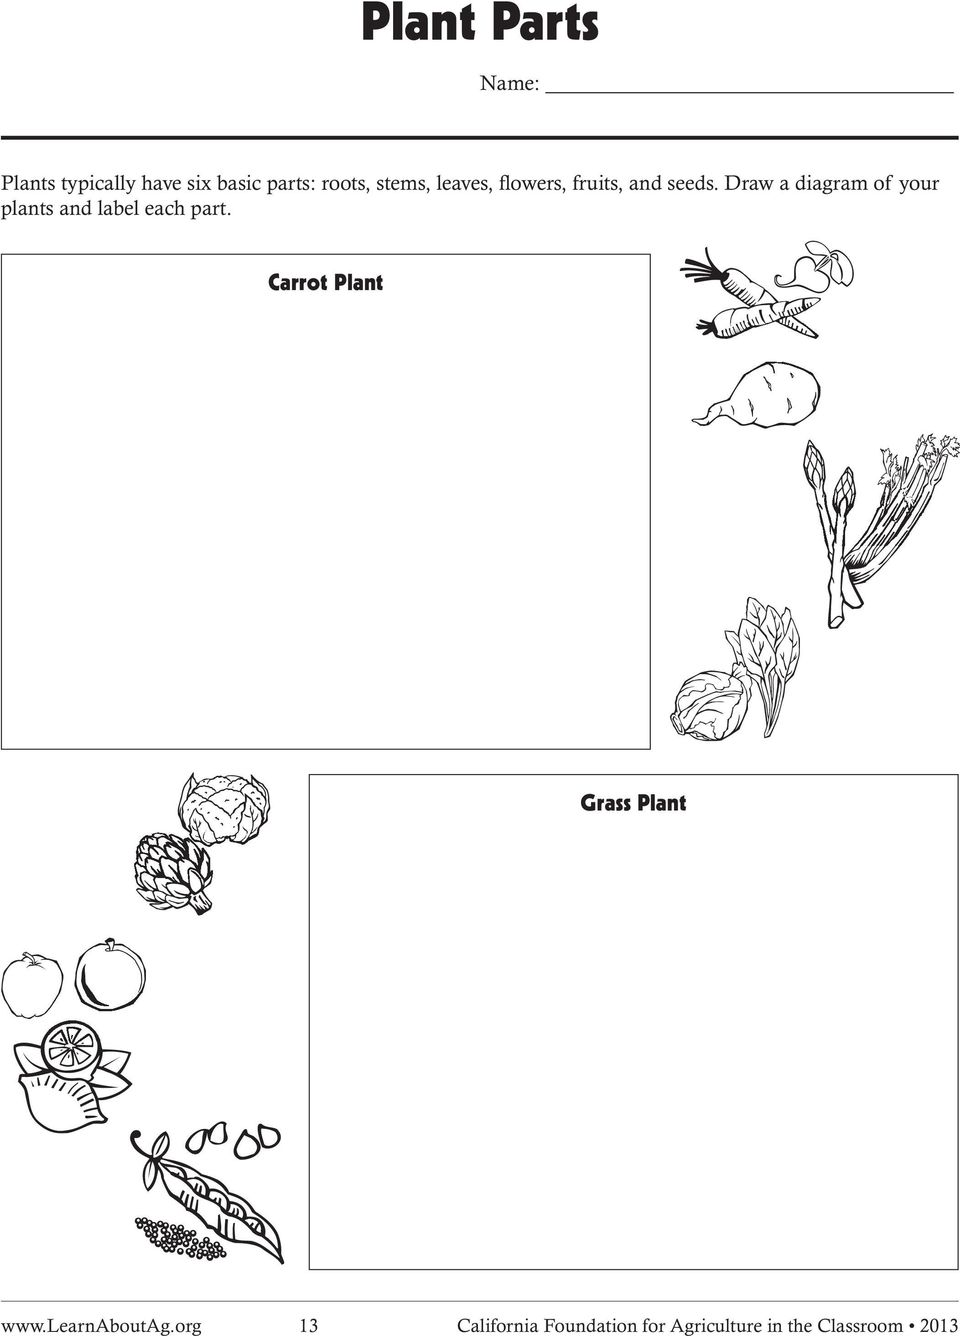 hight resolution of draw a diagram of your plants and label each part